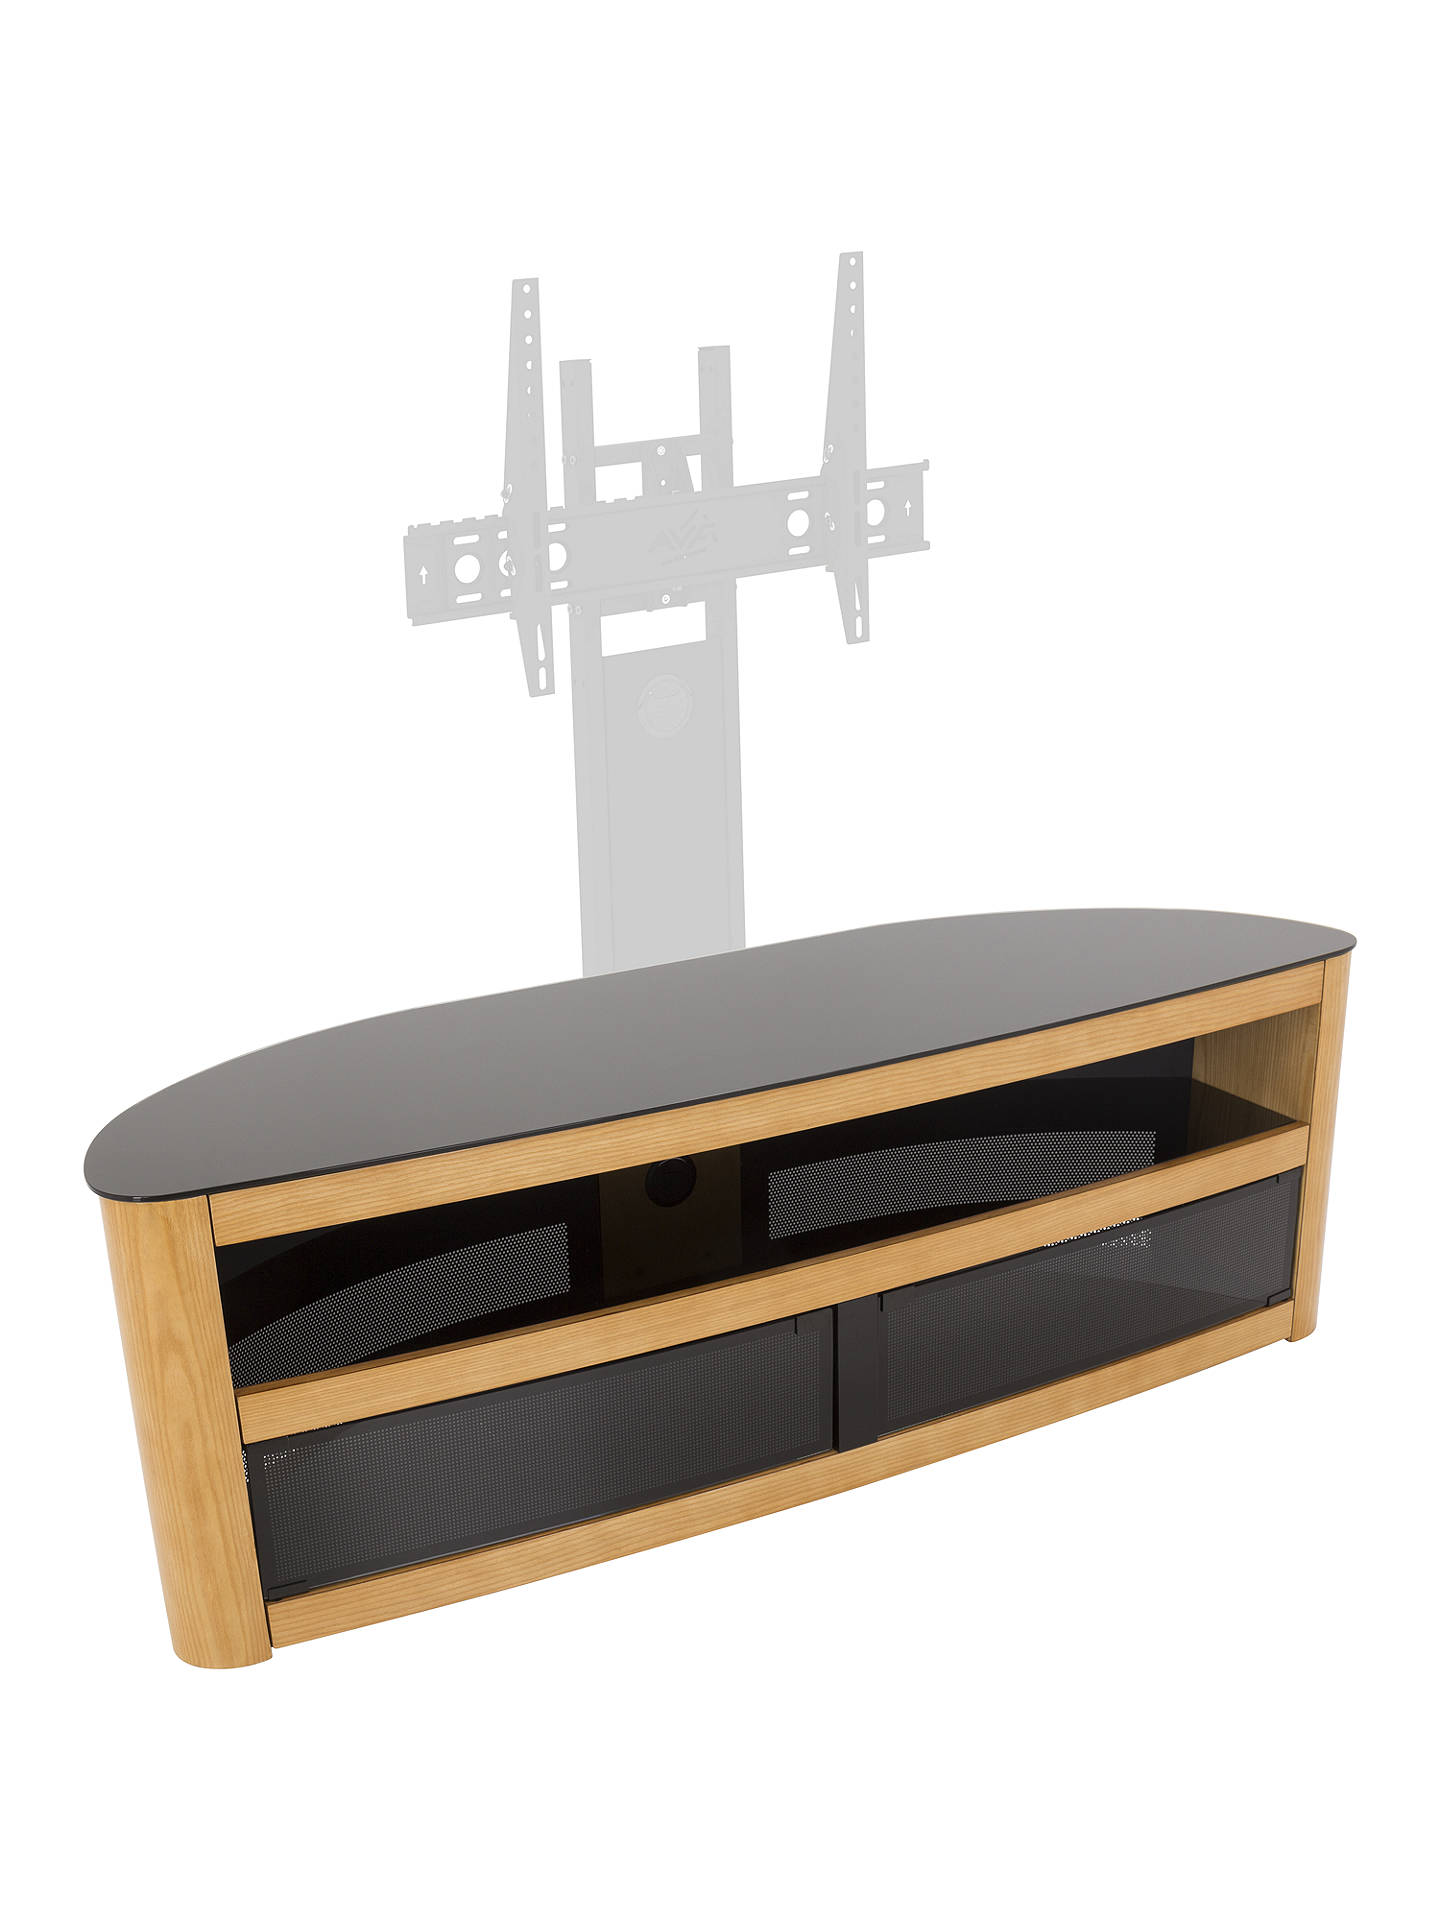 "BuyAVF Affinity Premium Burghley 1500 TV Stand For TVs Up To 70"", Oak Online at johnlewis.com"